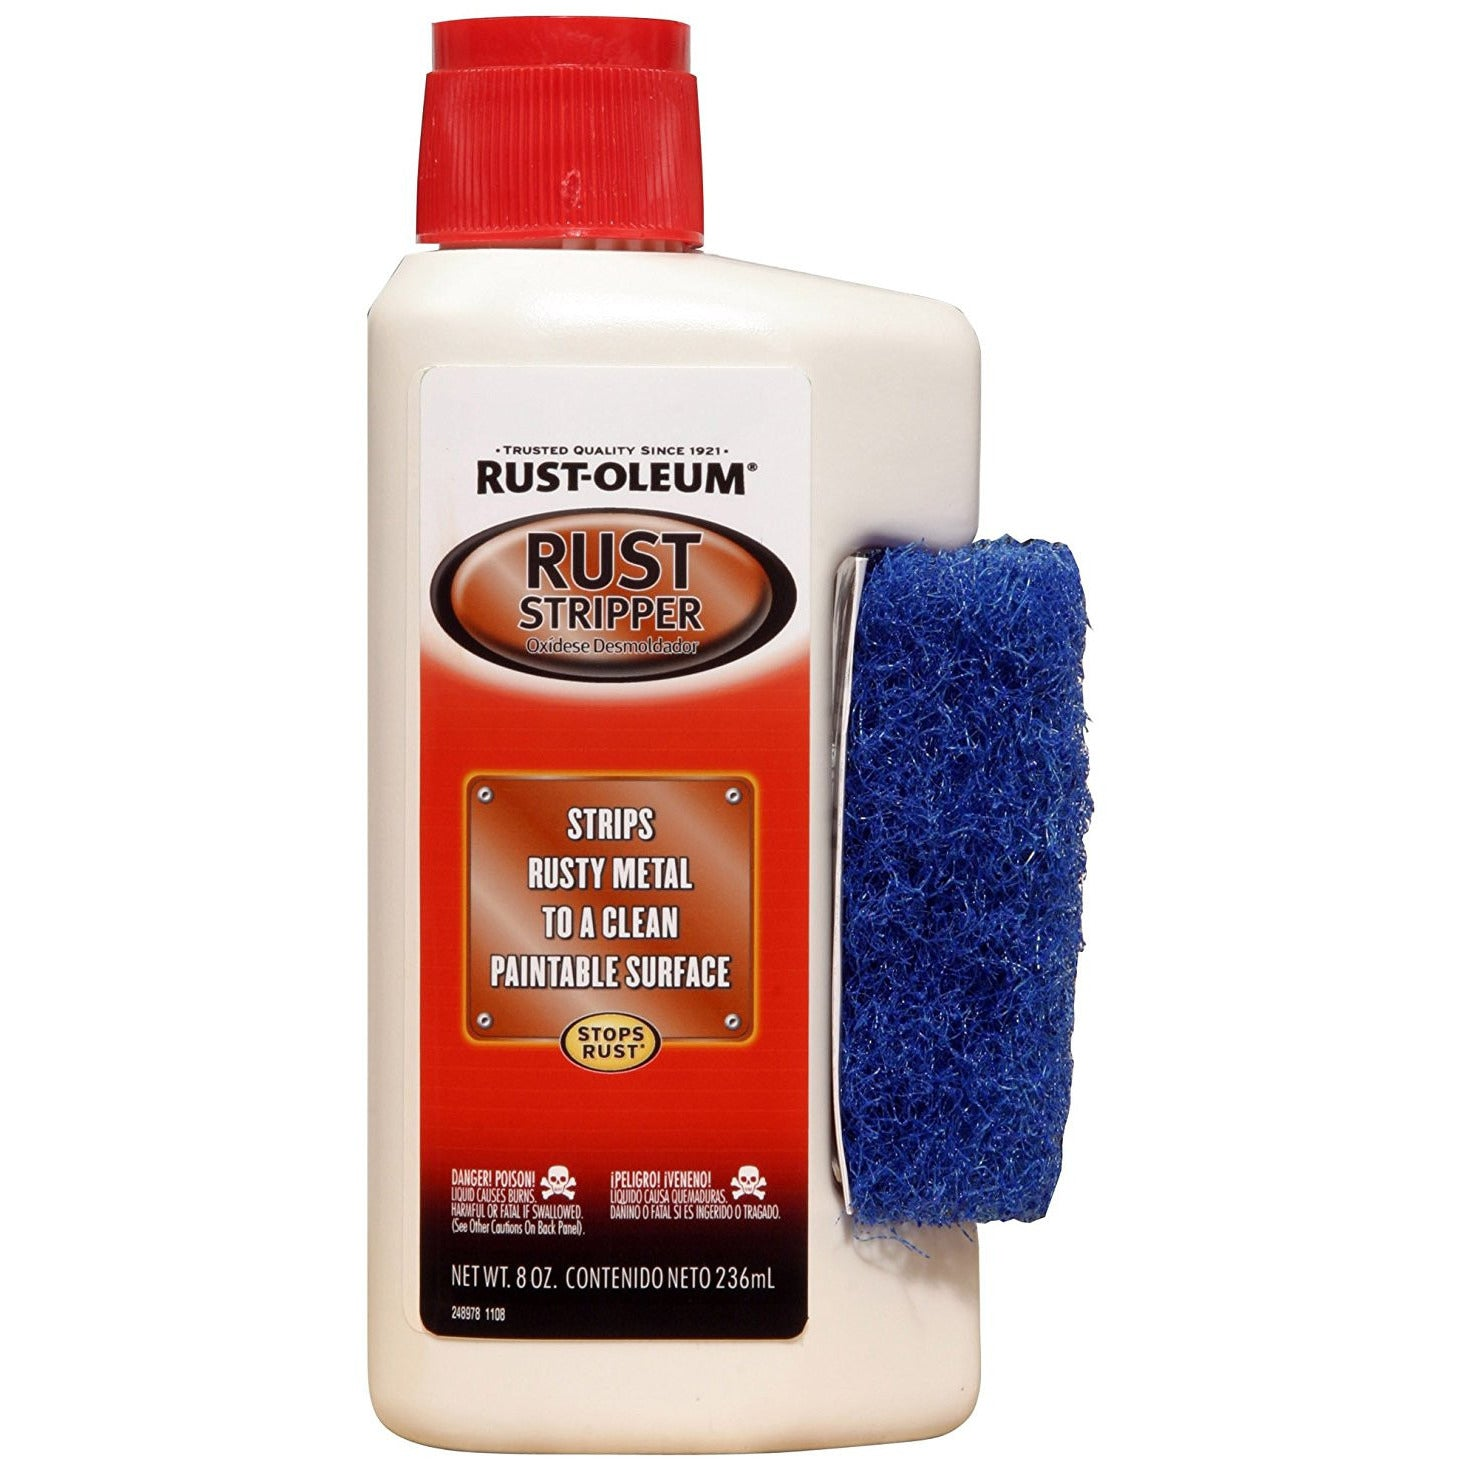 Rustoleum Rust Treatment - RUST STRIPPER 8 OZ.